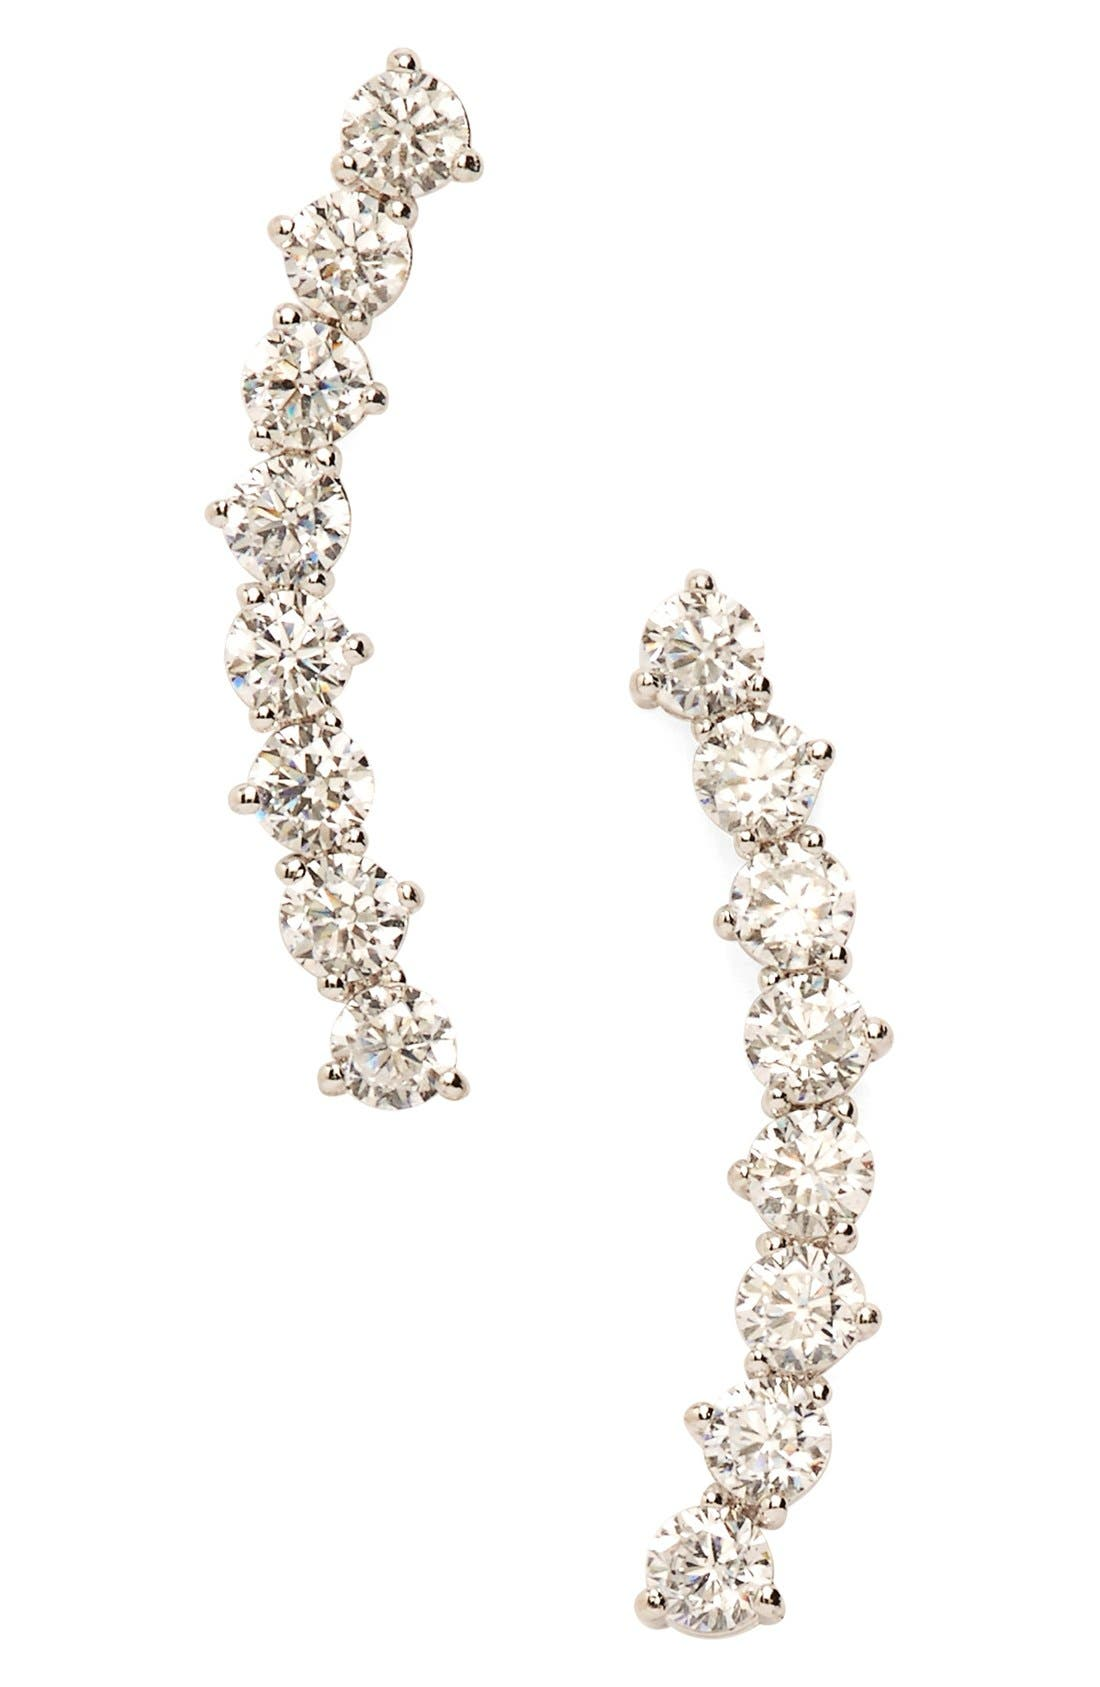 Nadri 'Salome' Cubic Zirconia Ear Crawlers